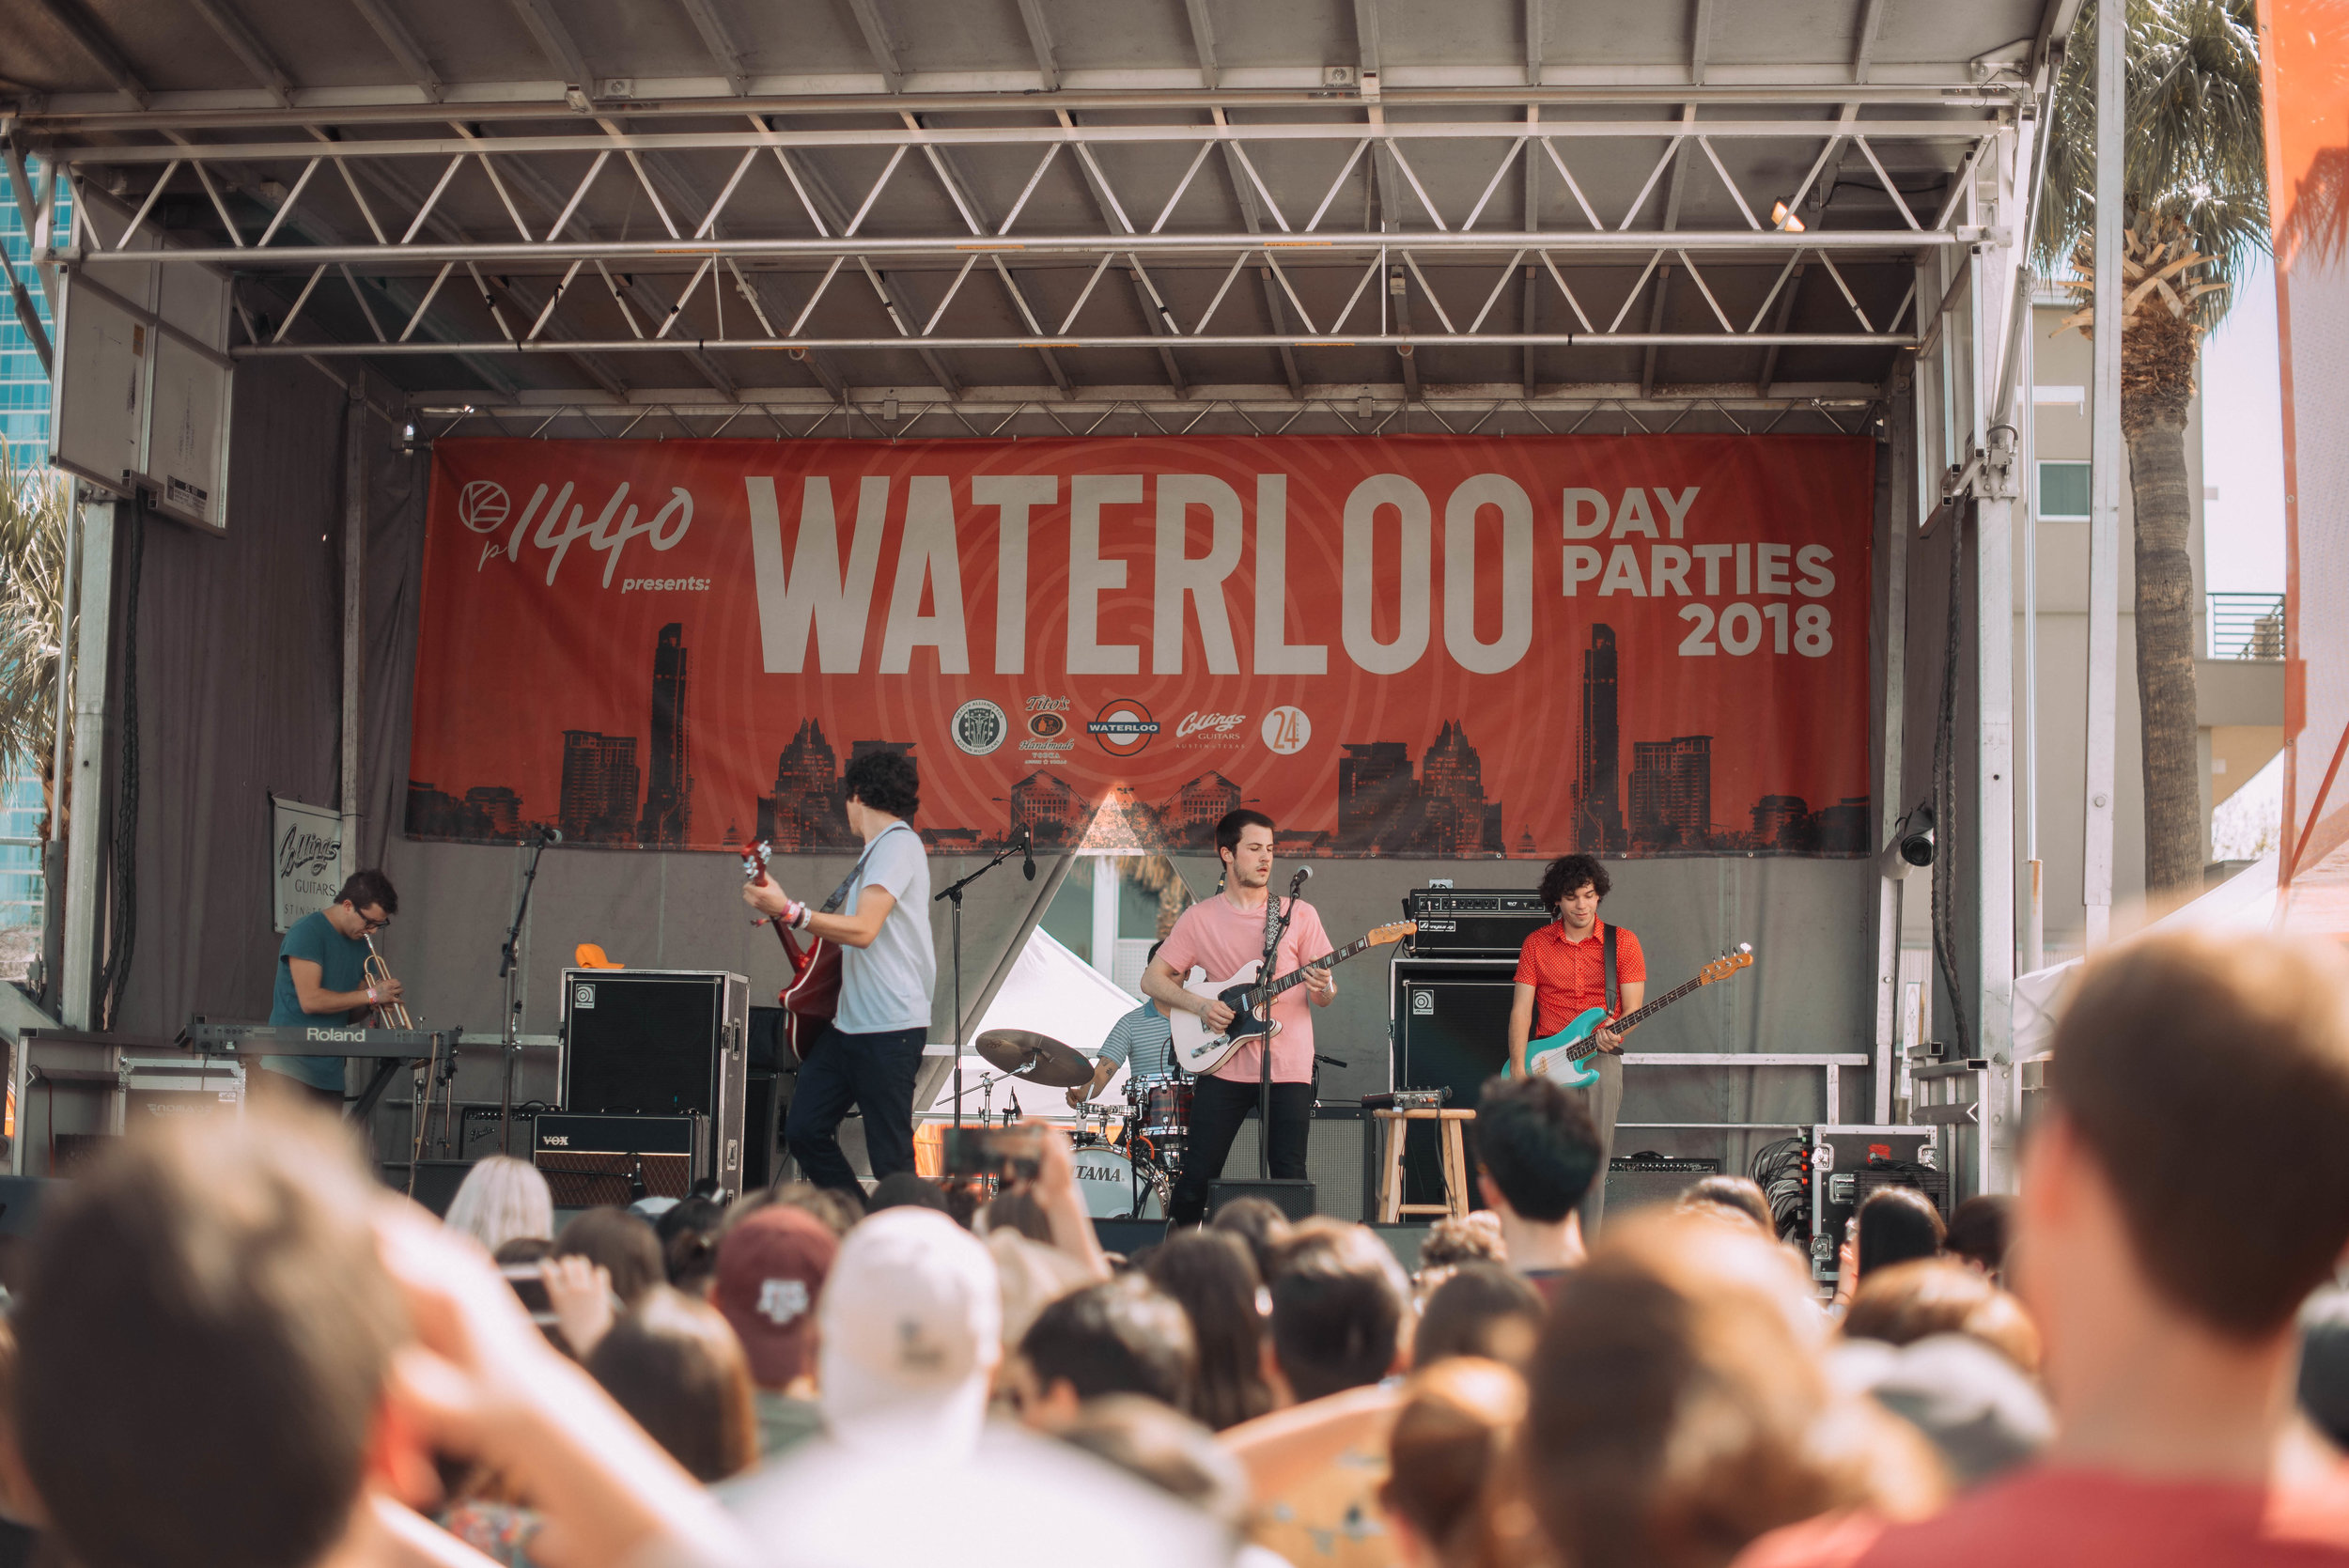 the-wallows-sxsw-2018_40159401684_o.jpg